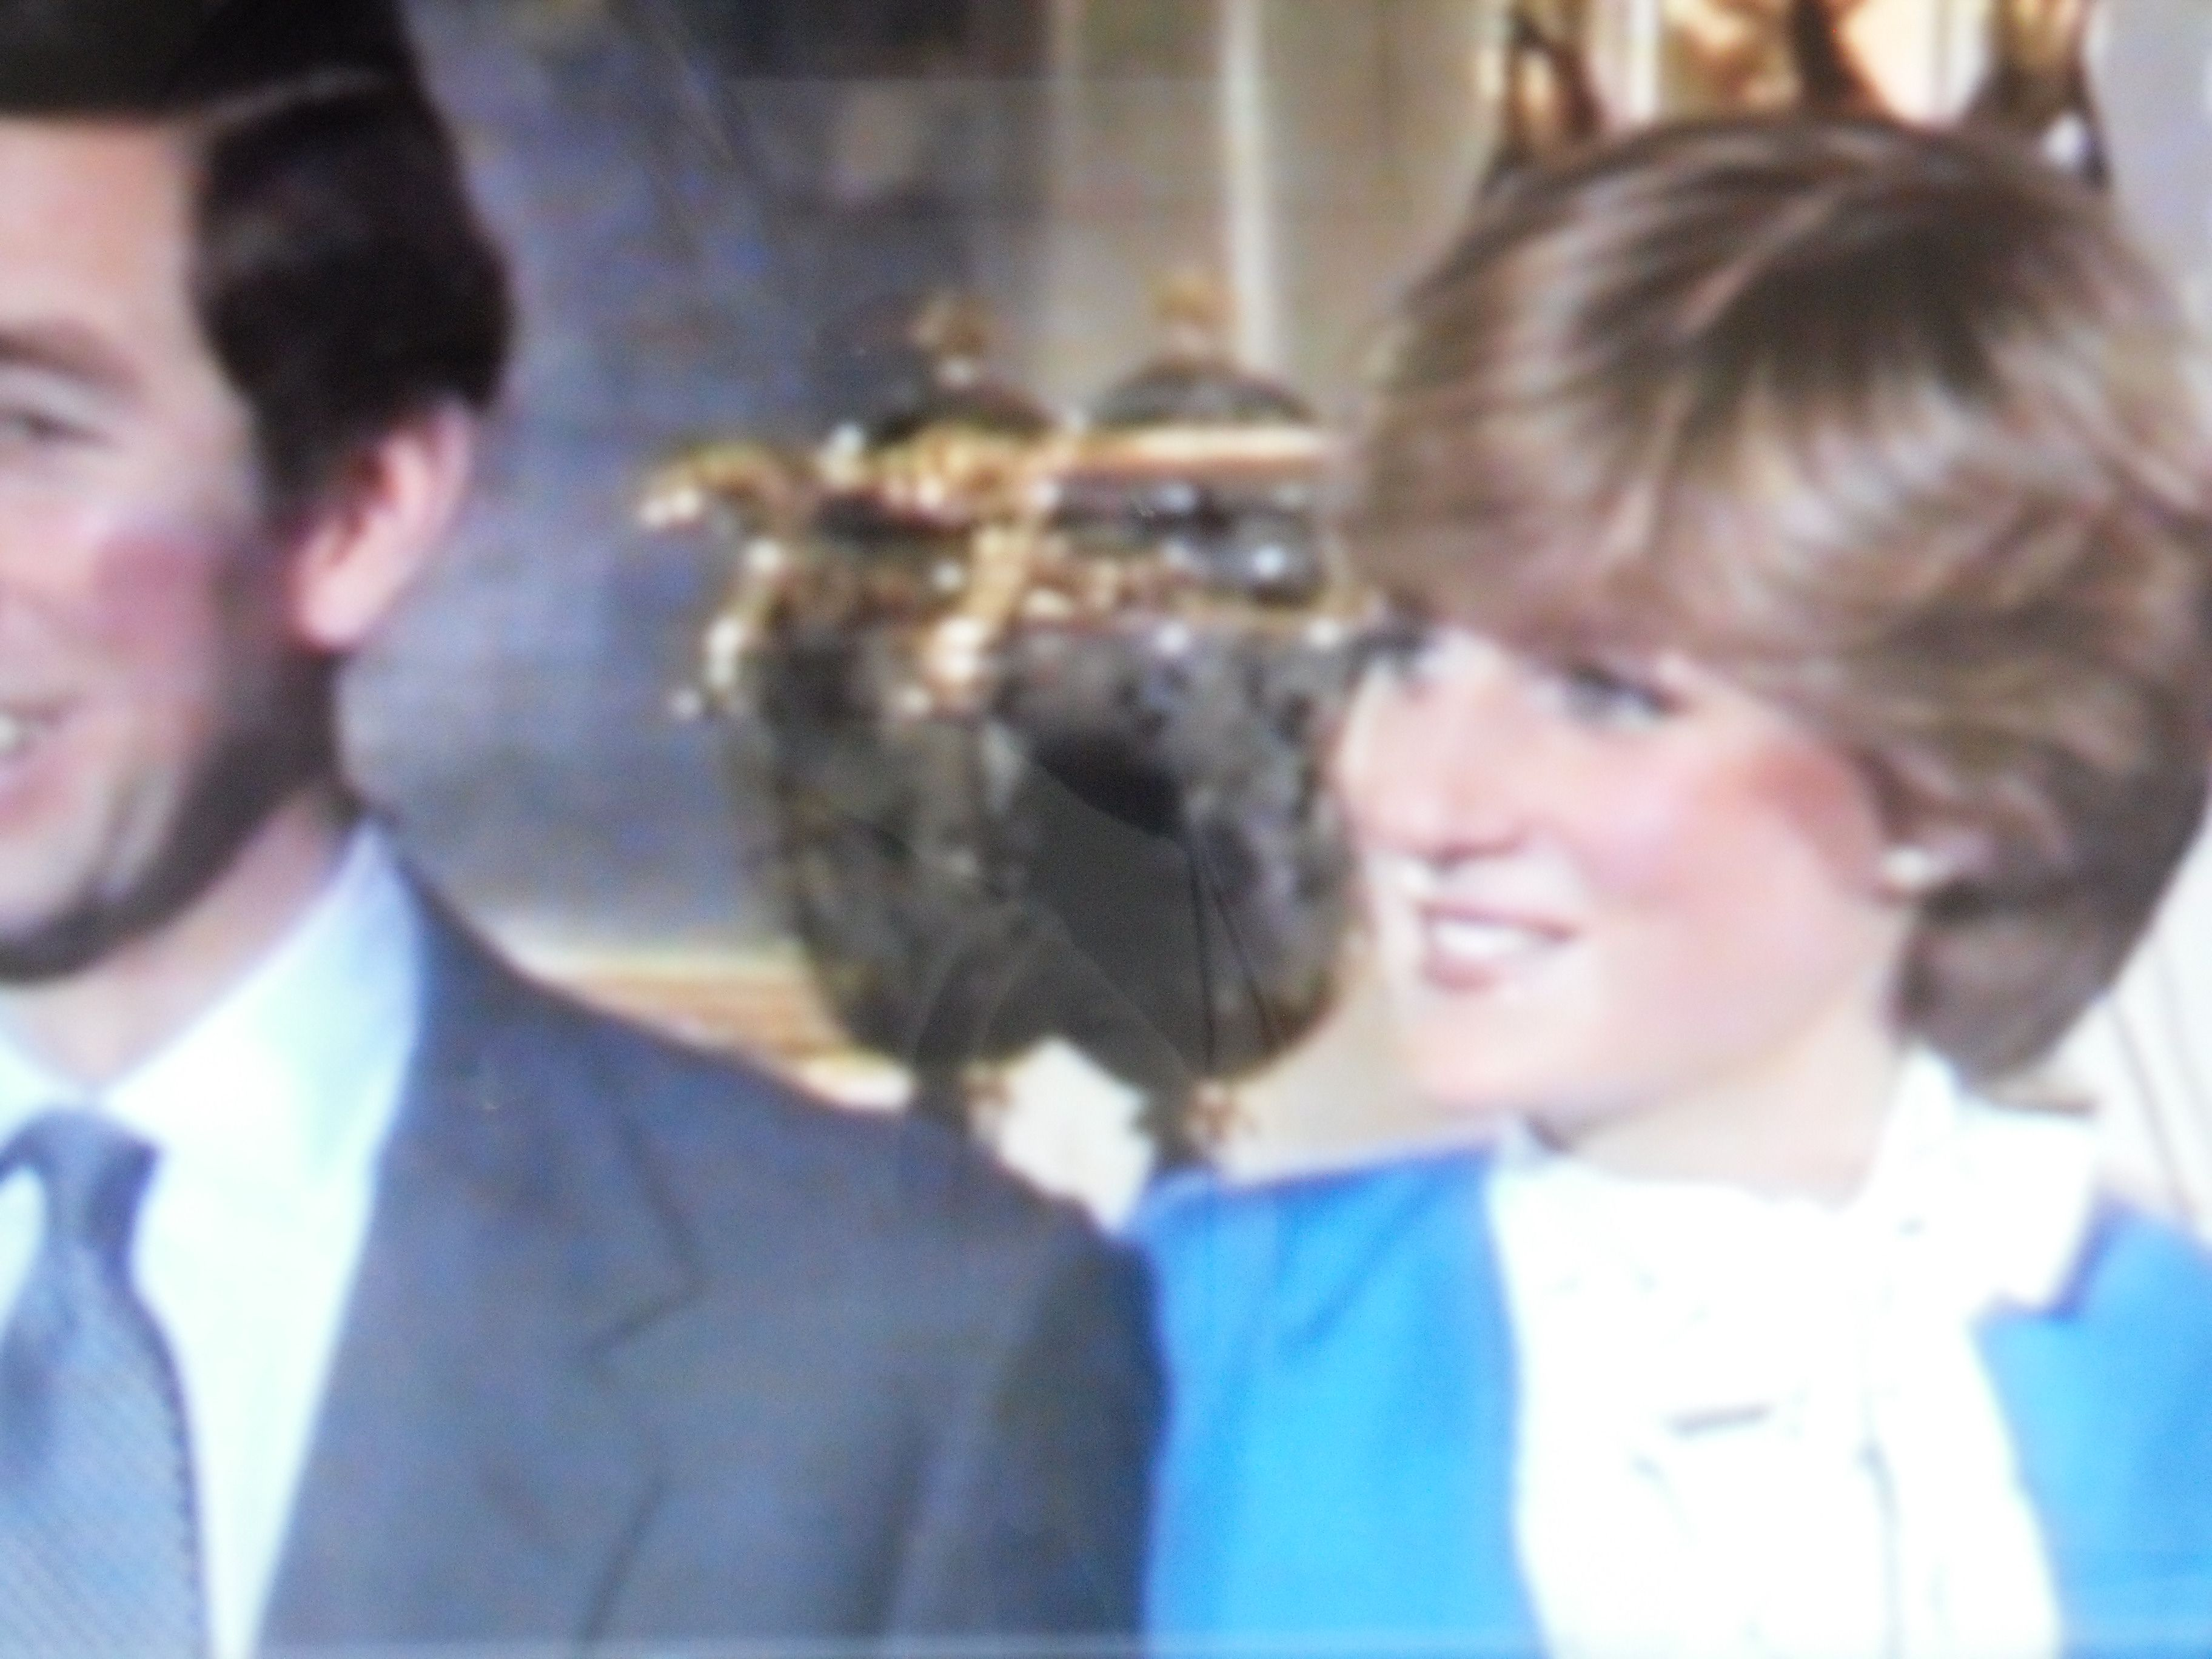 Pin by Amy Amirault on February 24th/1981 The Engagement